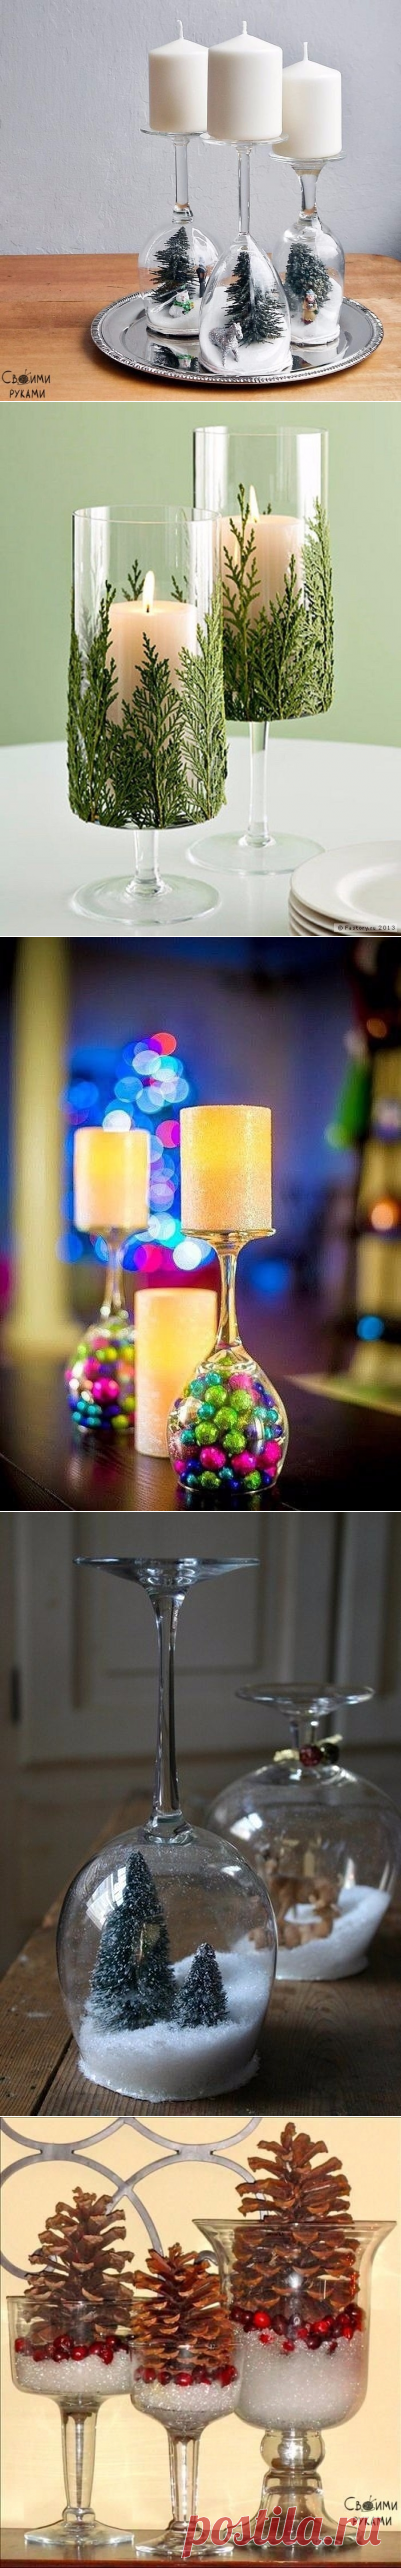 New Year's decor by means of glasses